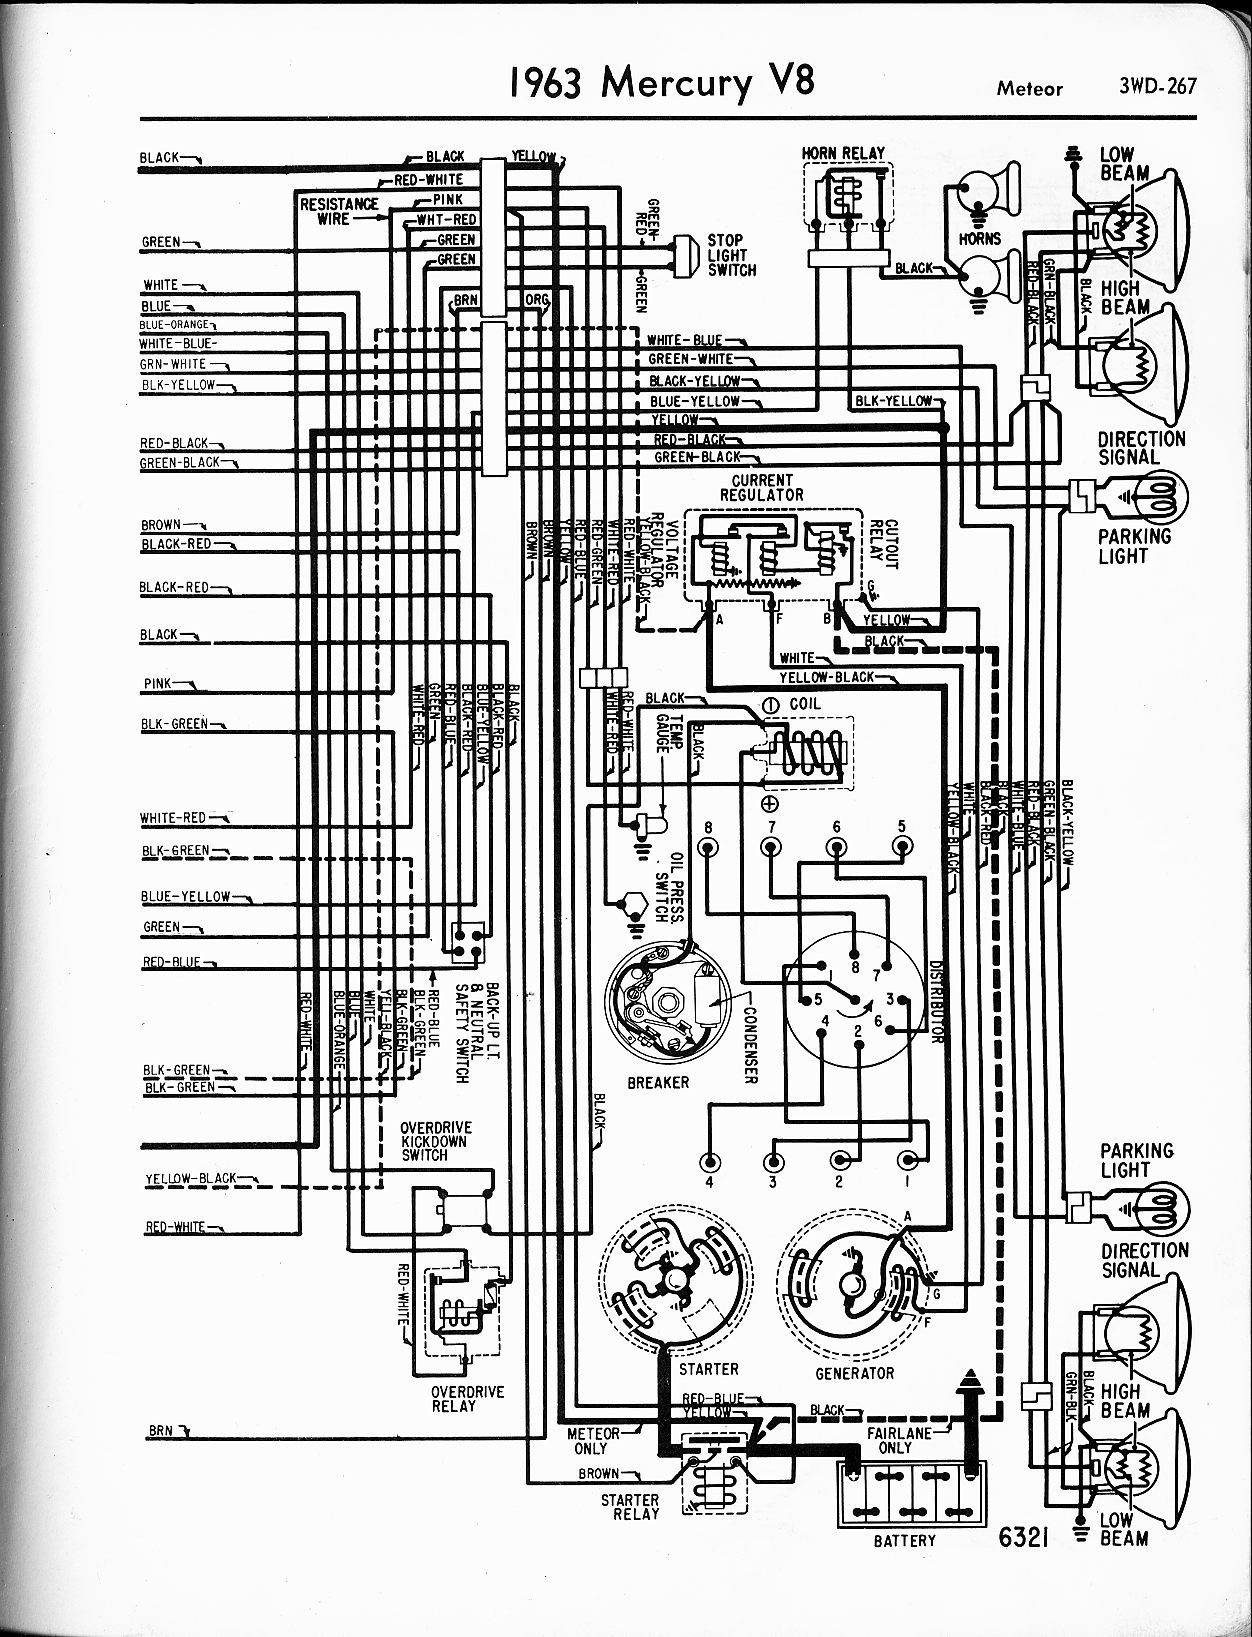 55 Chevy Drawing At Free For Personal Use 1957 Bel Air Wiring Diagram 1252x1637 Mercury Diagrams